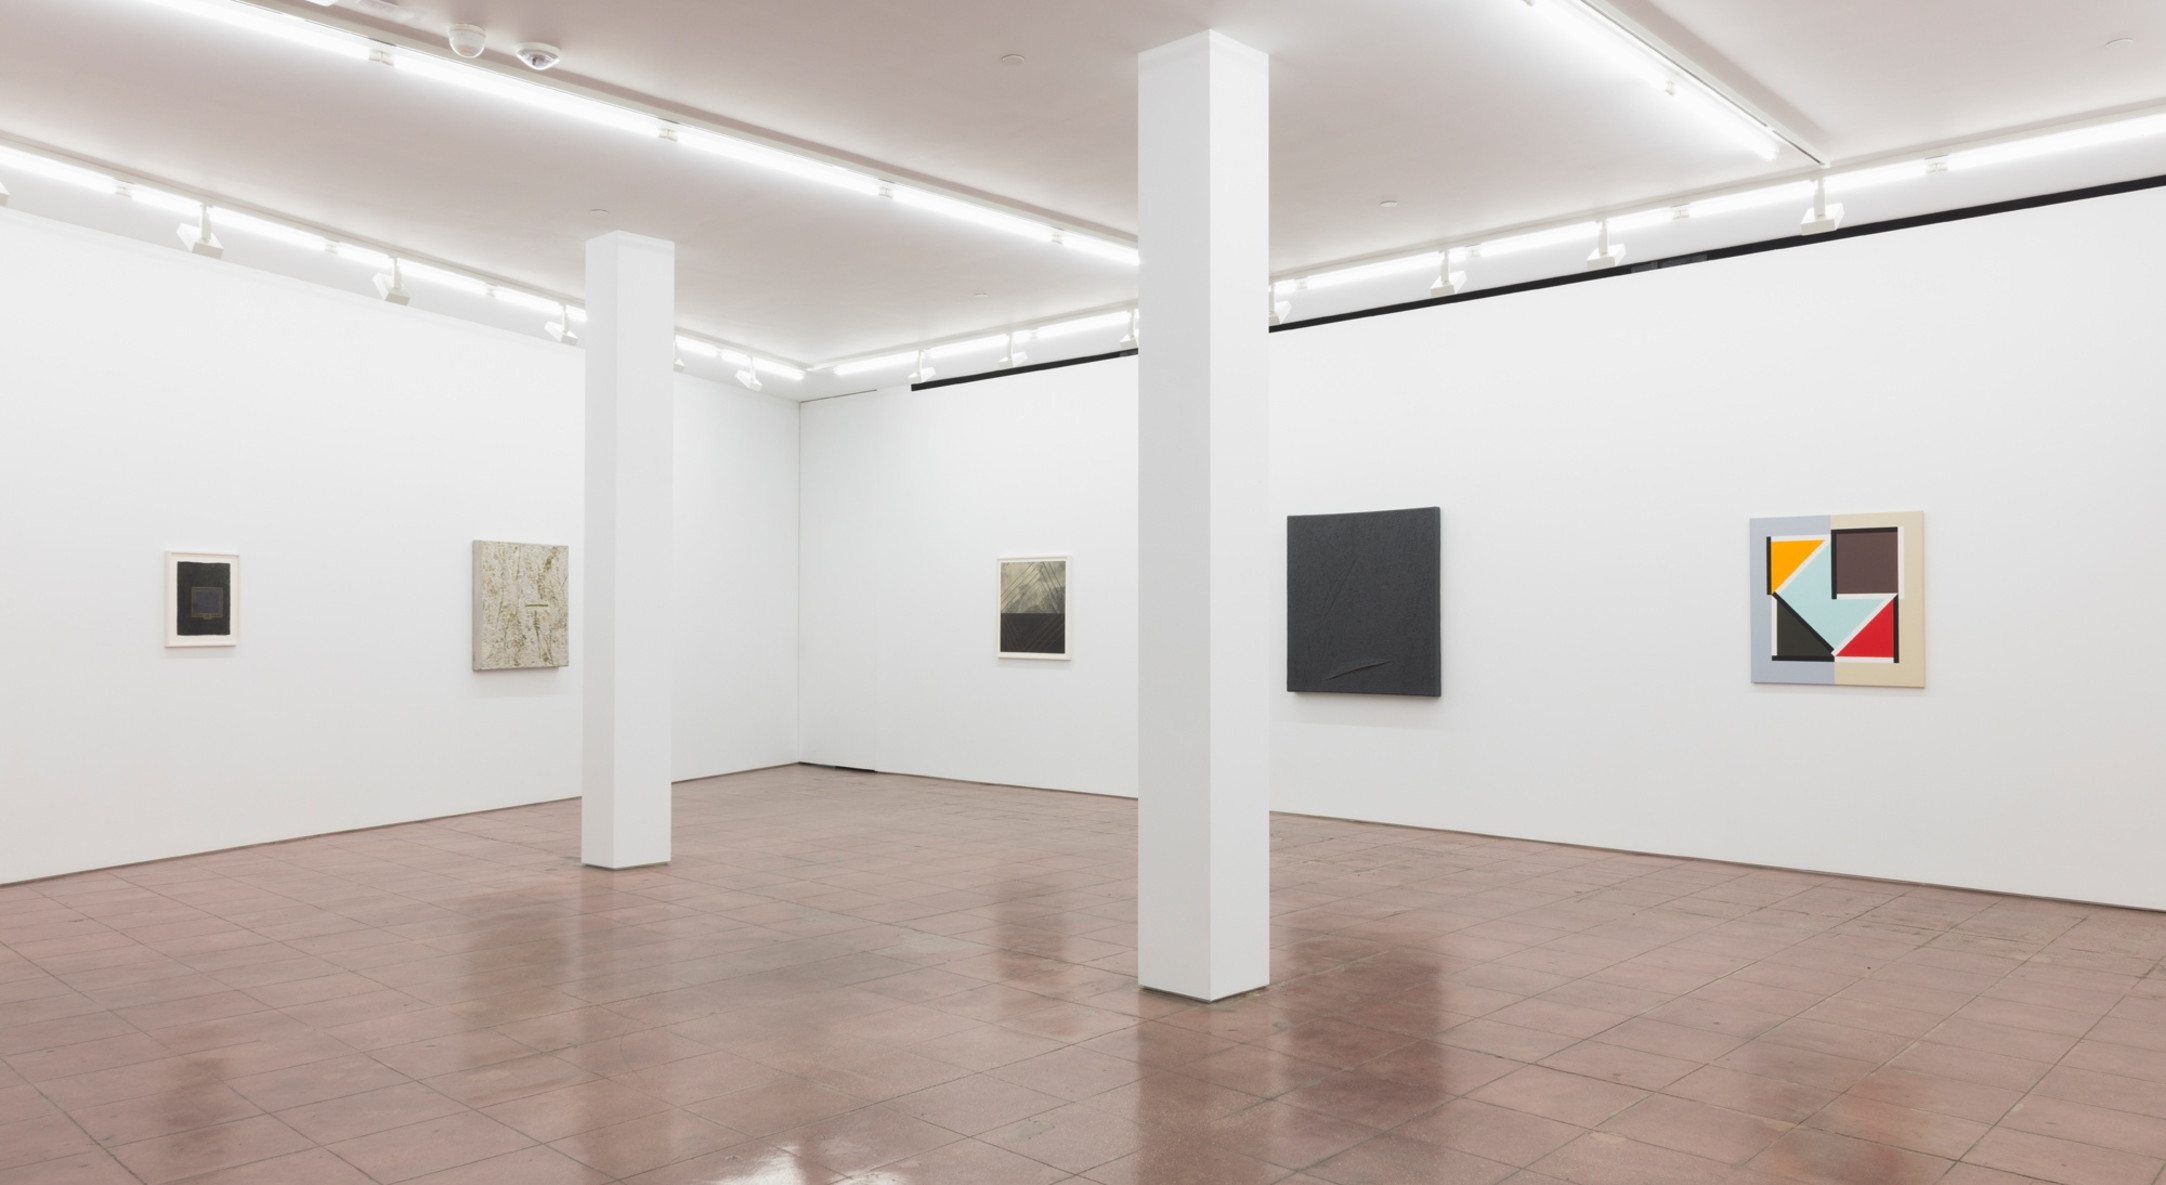 Installation view of Site, Hales New York